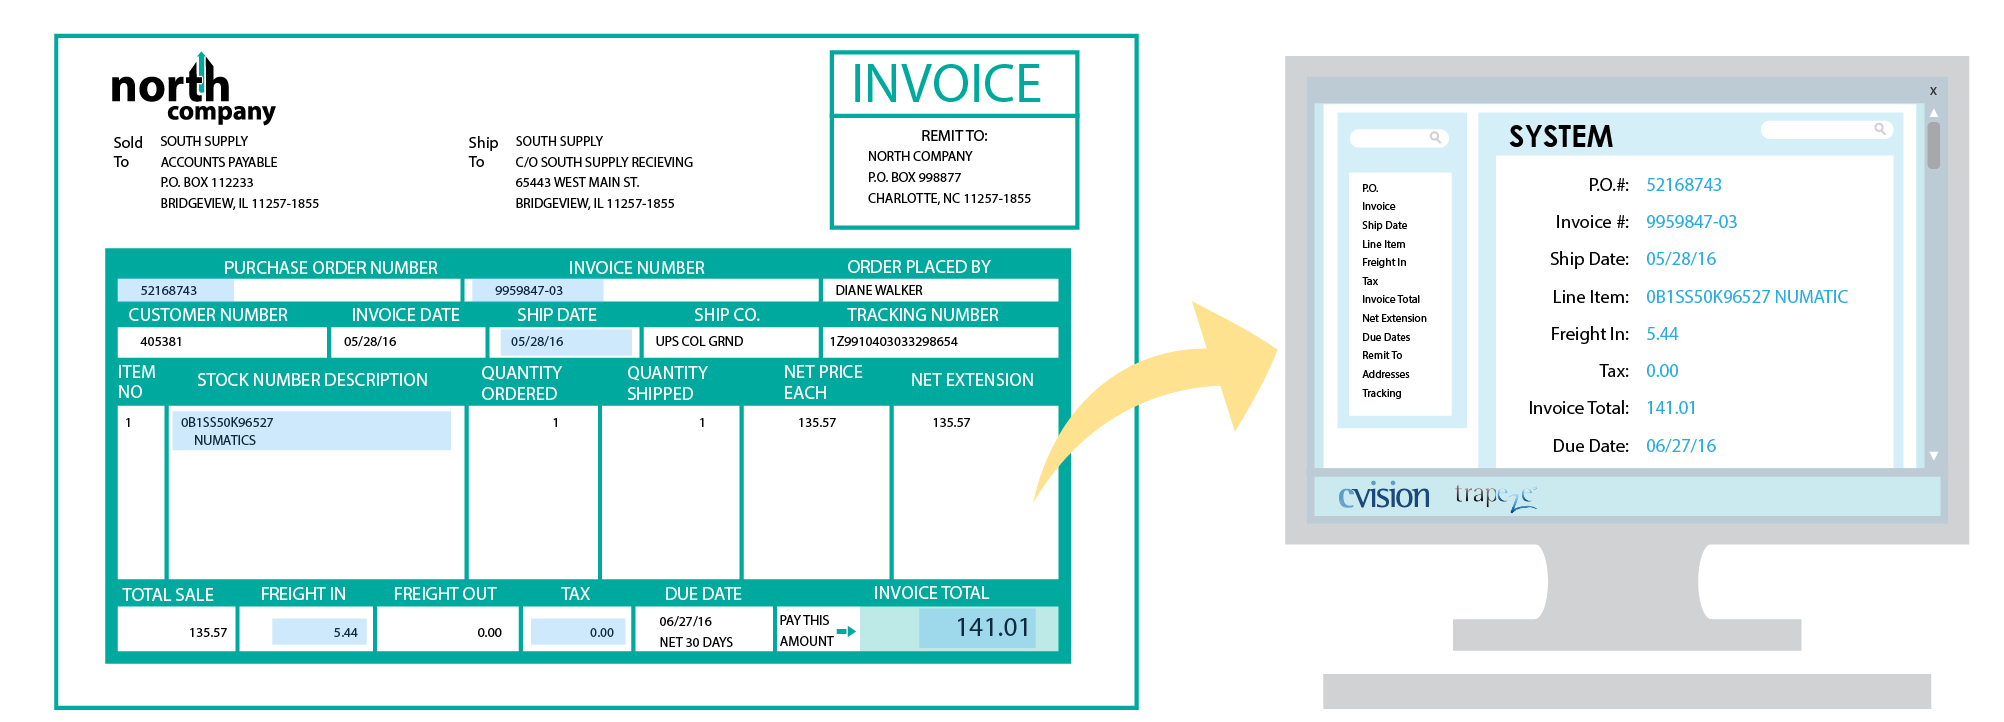 Sales Invoice Processing CVISION Technologies